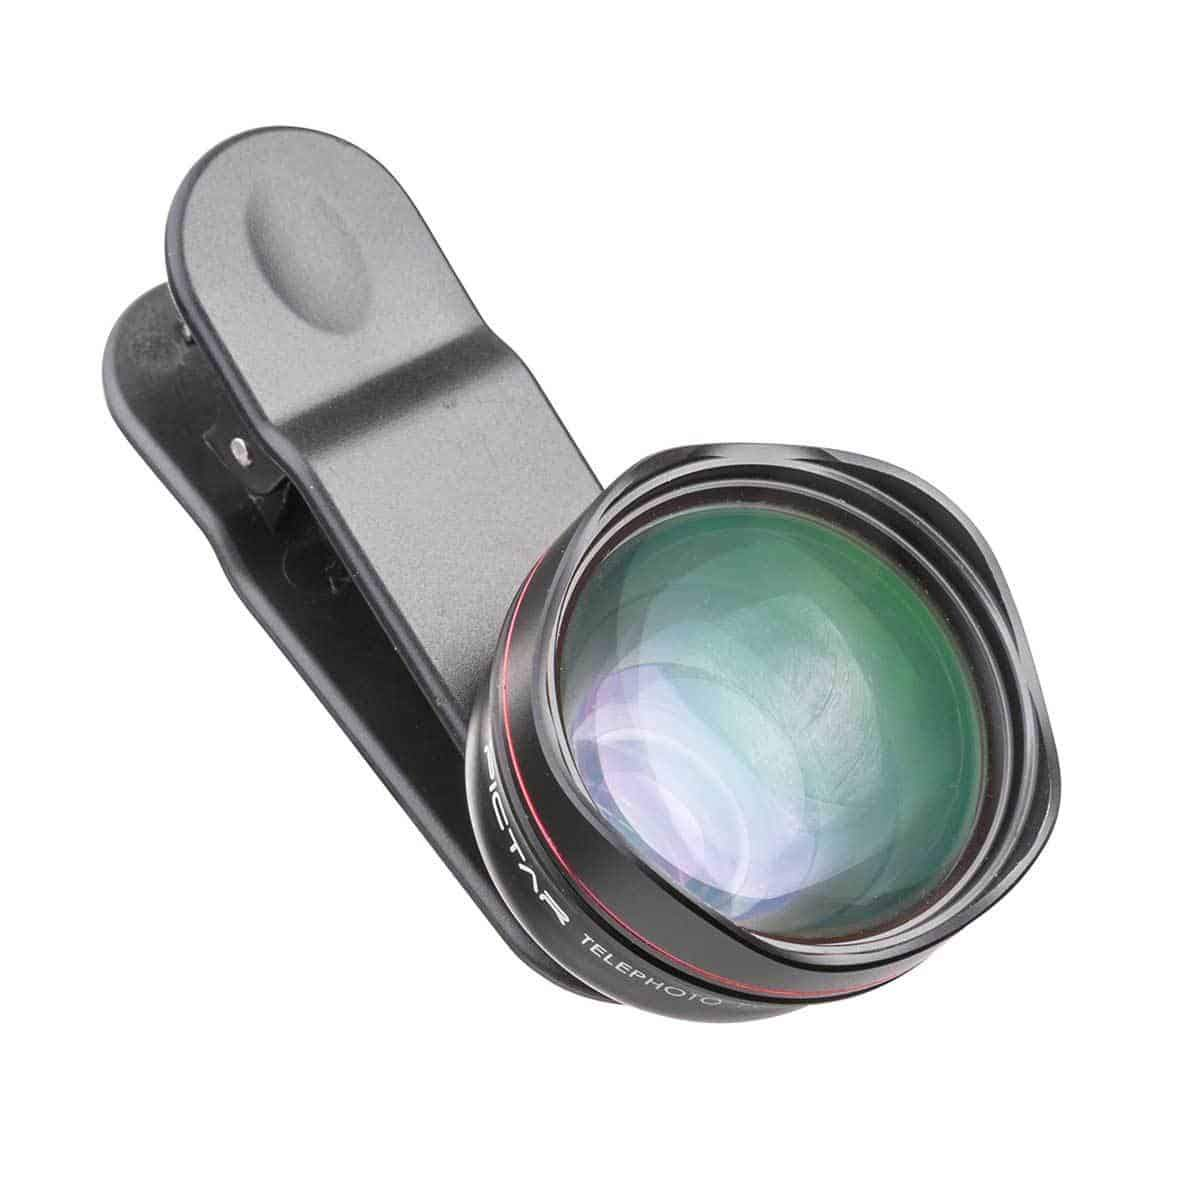 Pictar Telephoto 60mm Smartphone Lens Accessories Pictar